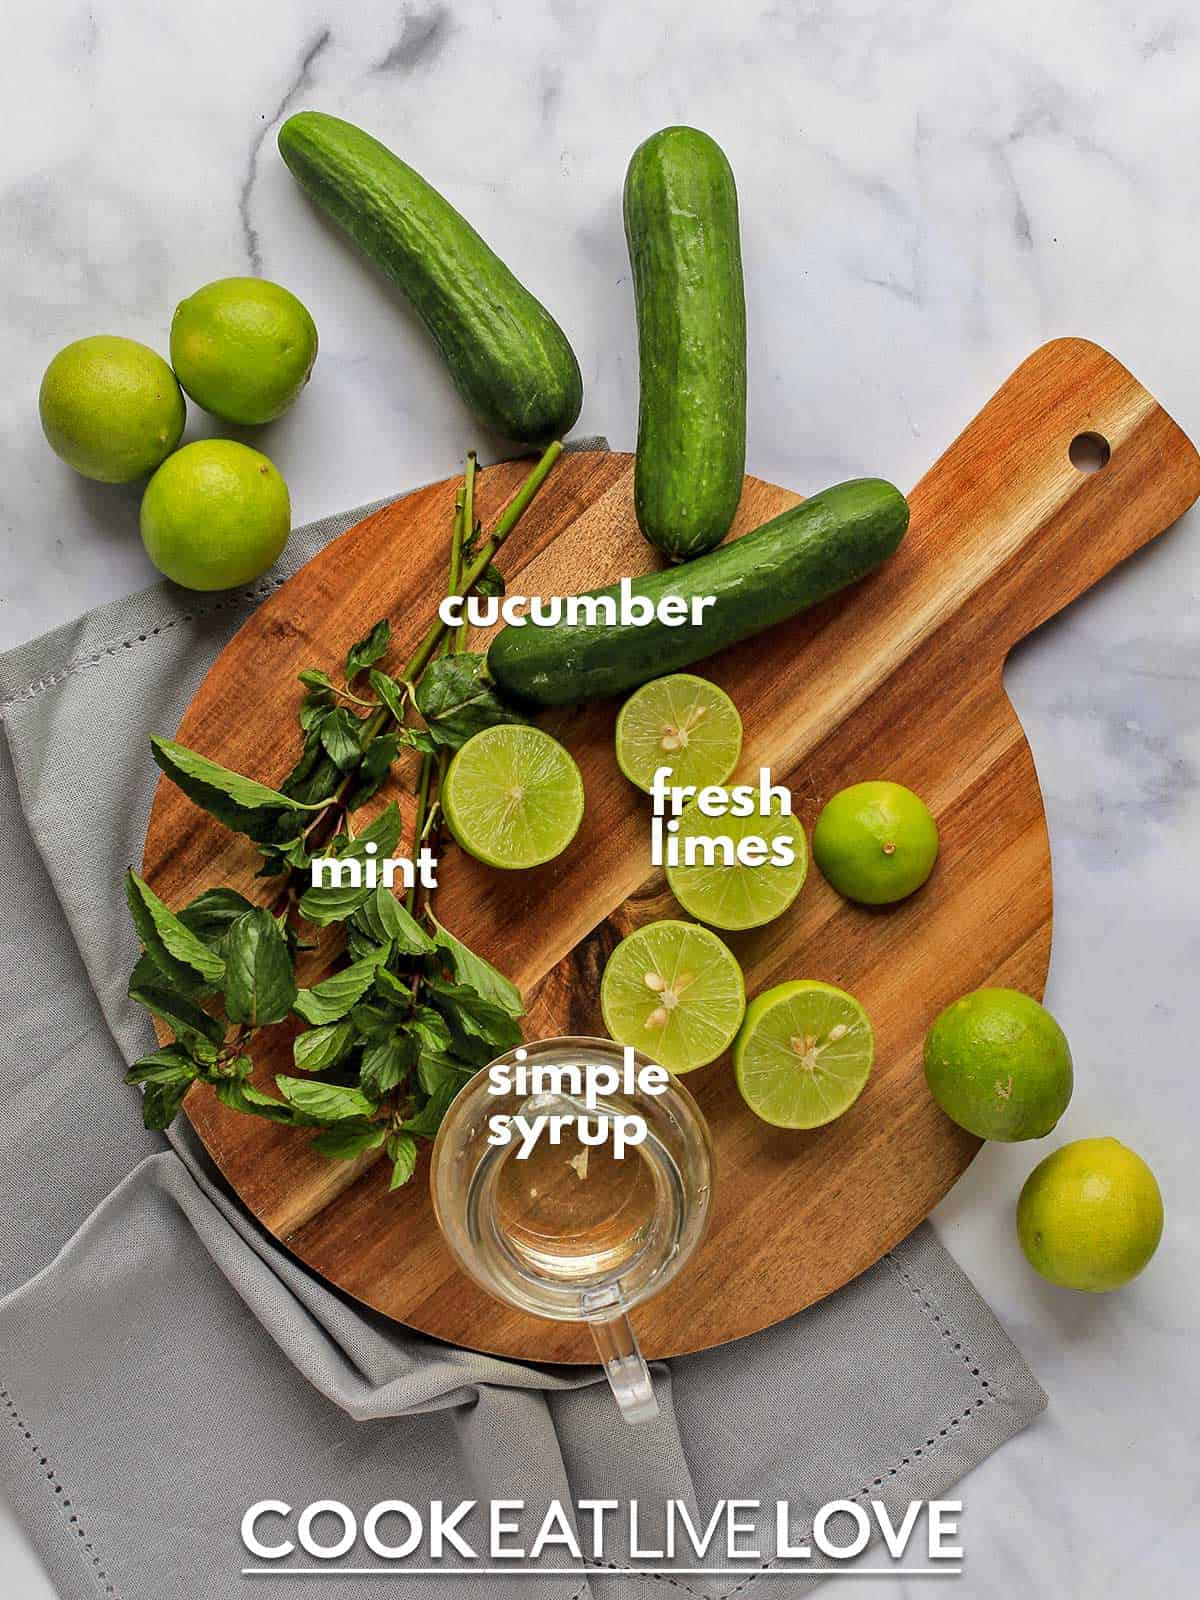 Ingredients to make cucumber spritzer on the table with text labels